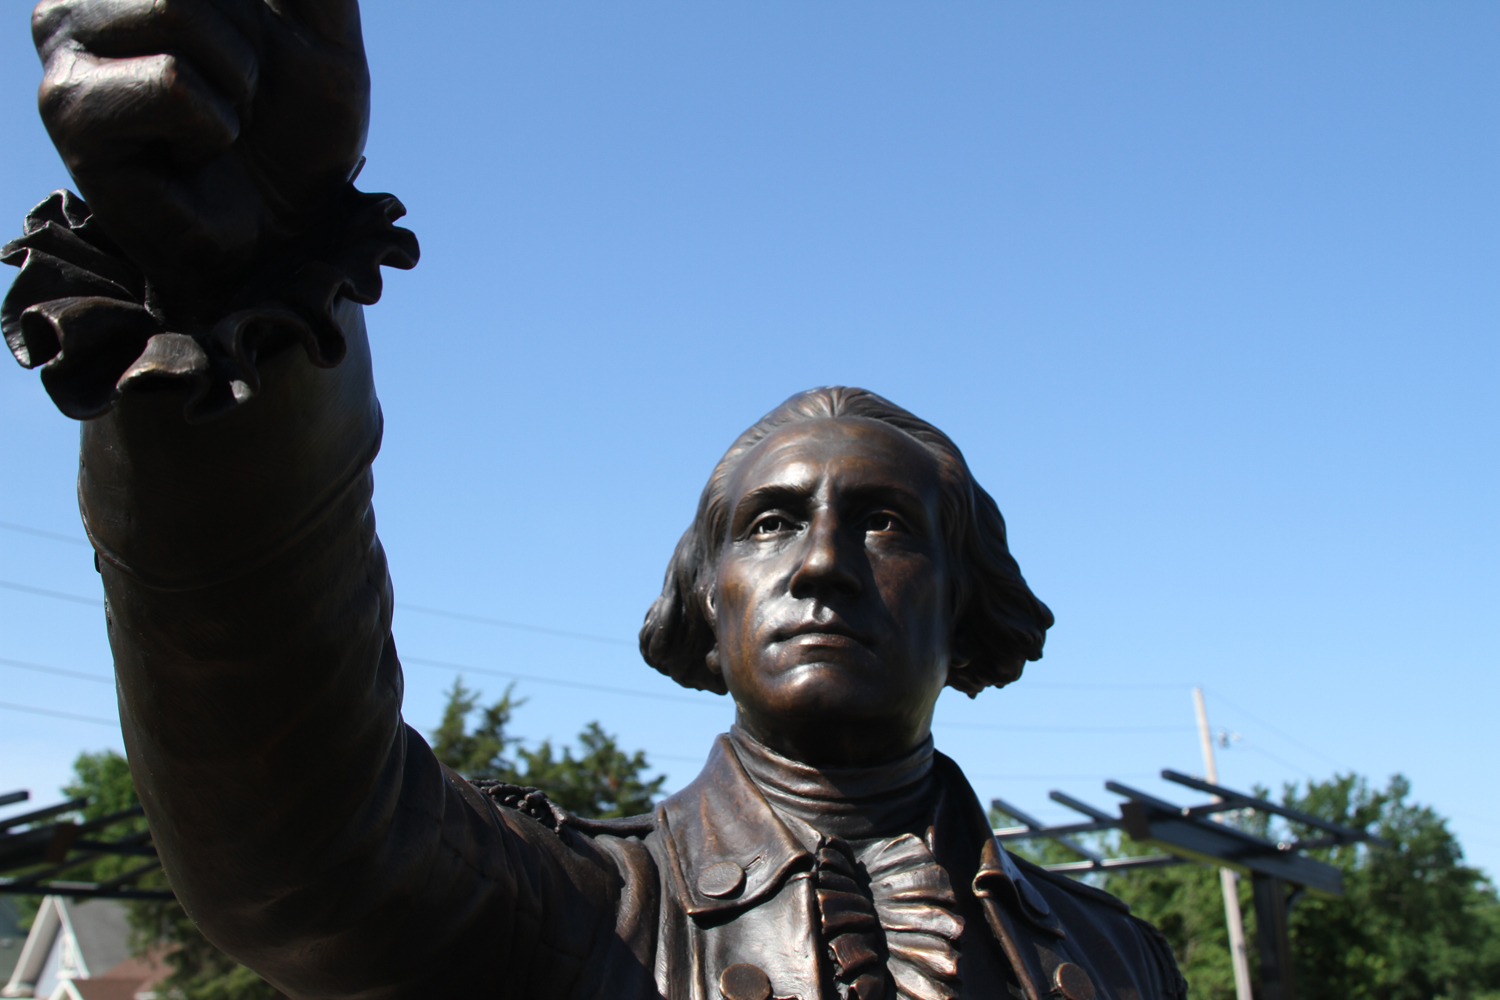 George Washington sculpture horiz20130620c